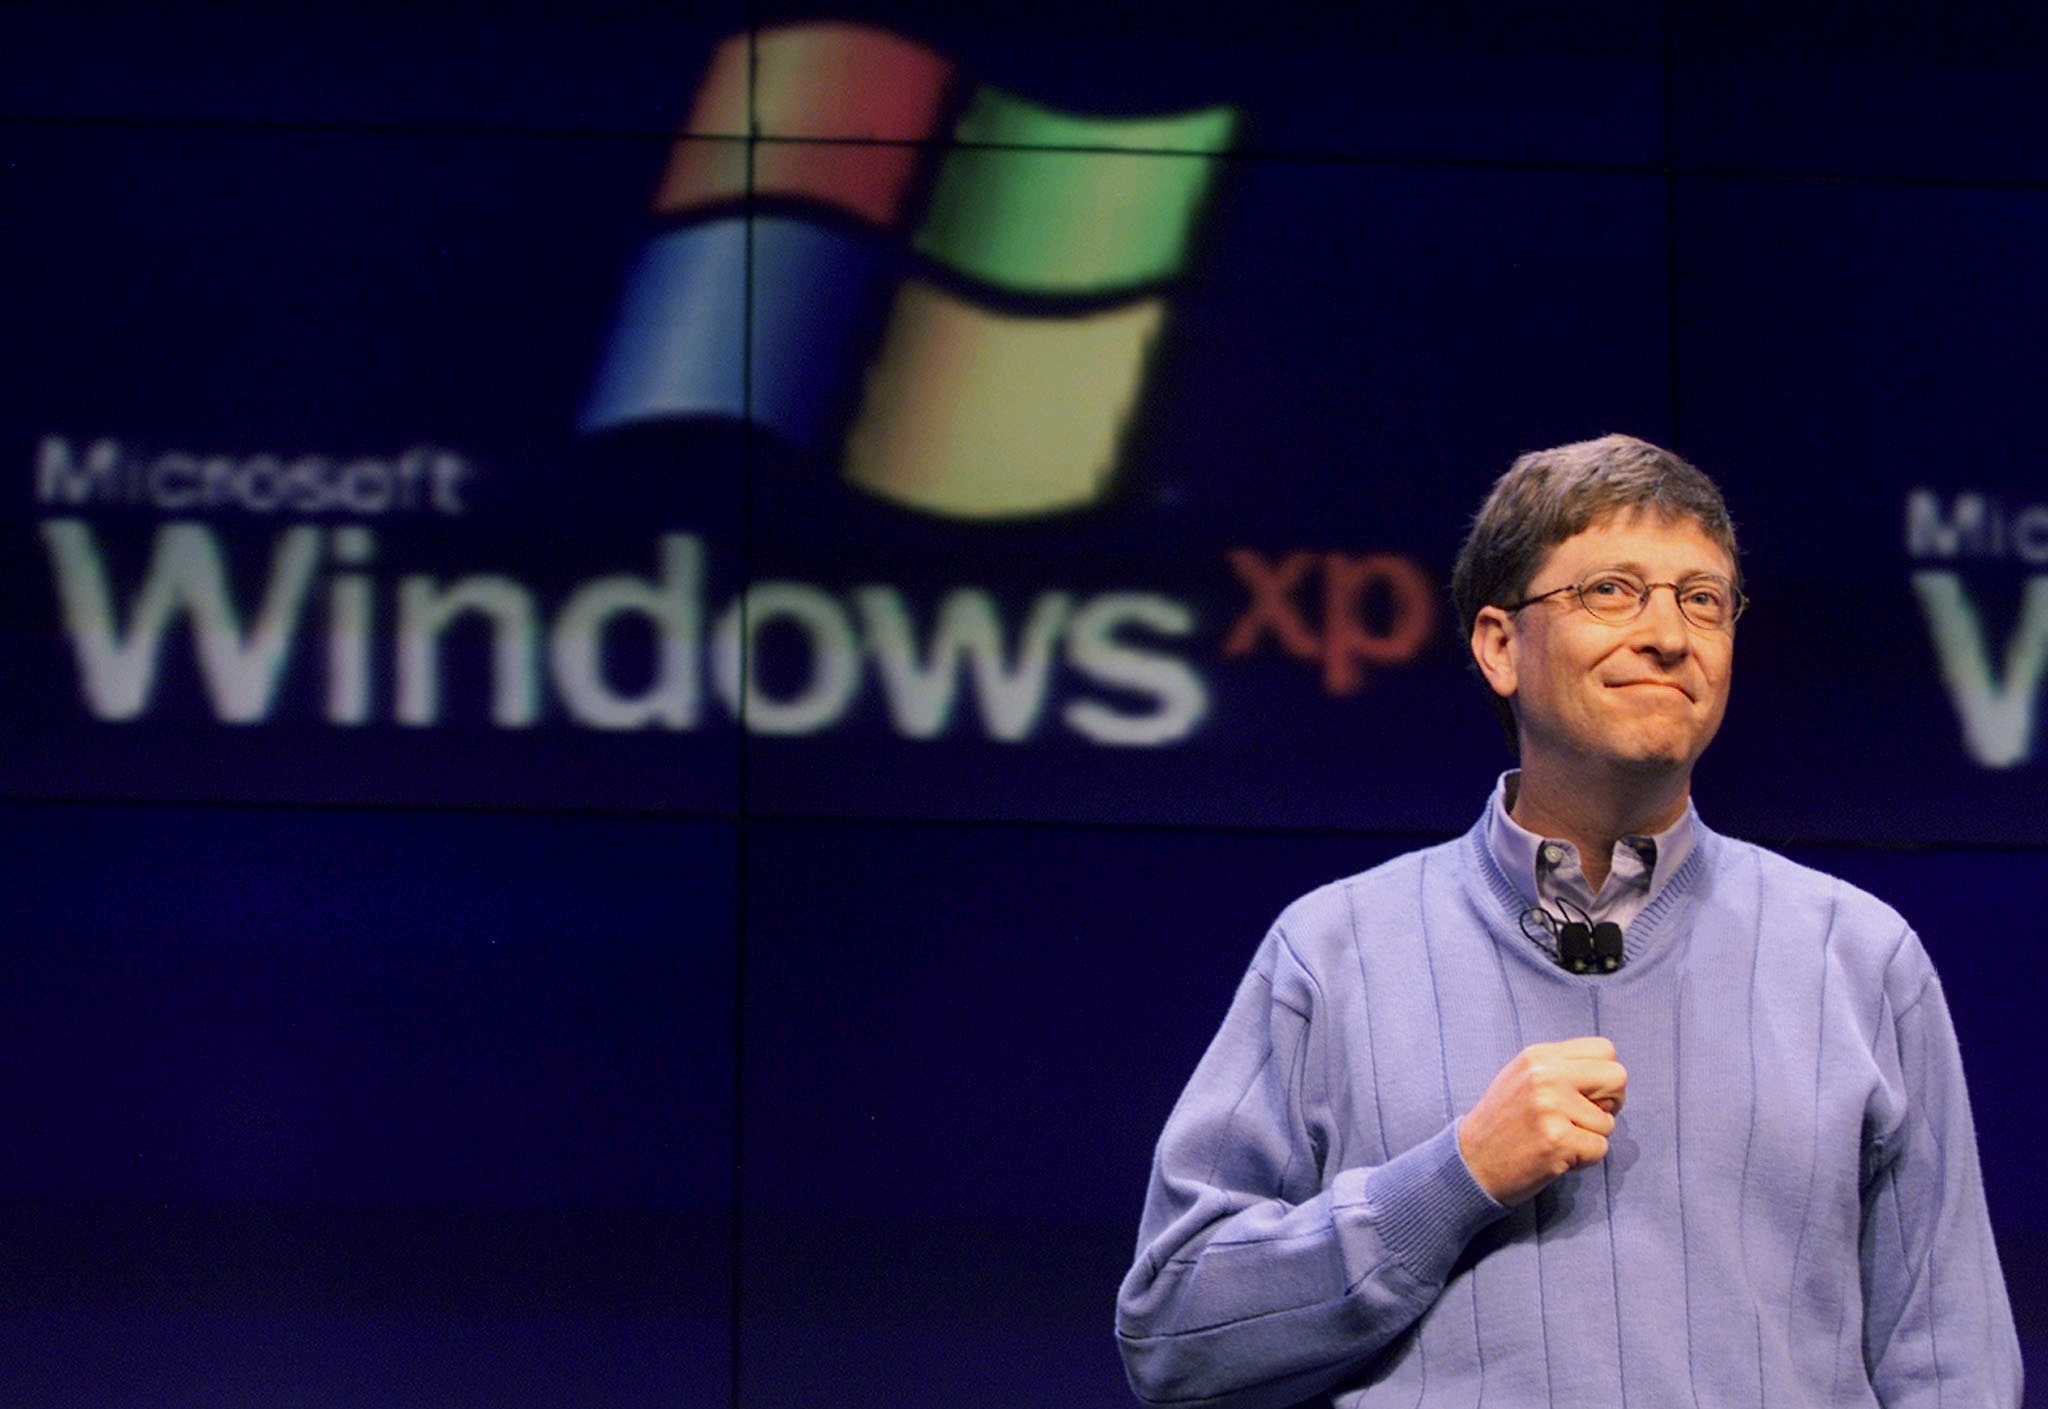 microsoft windows bill gates HD Wallpaper